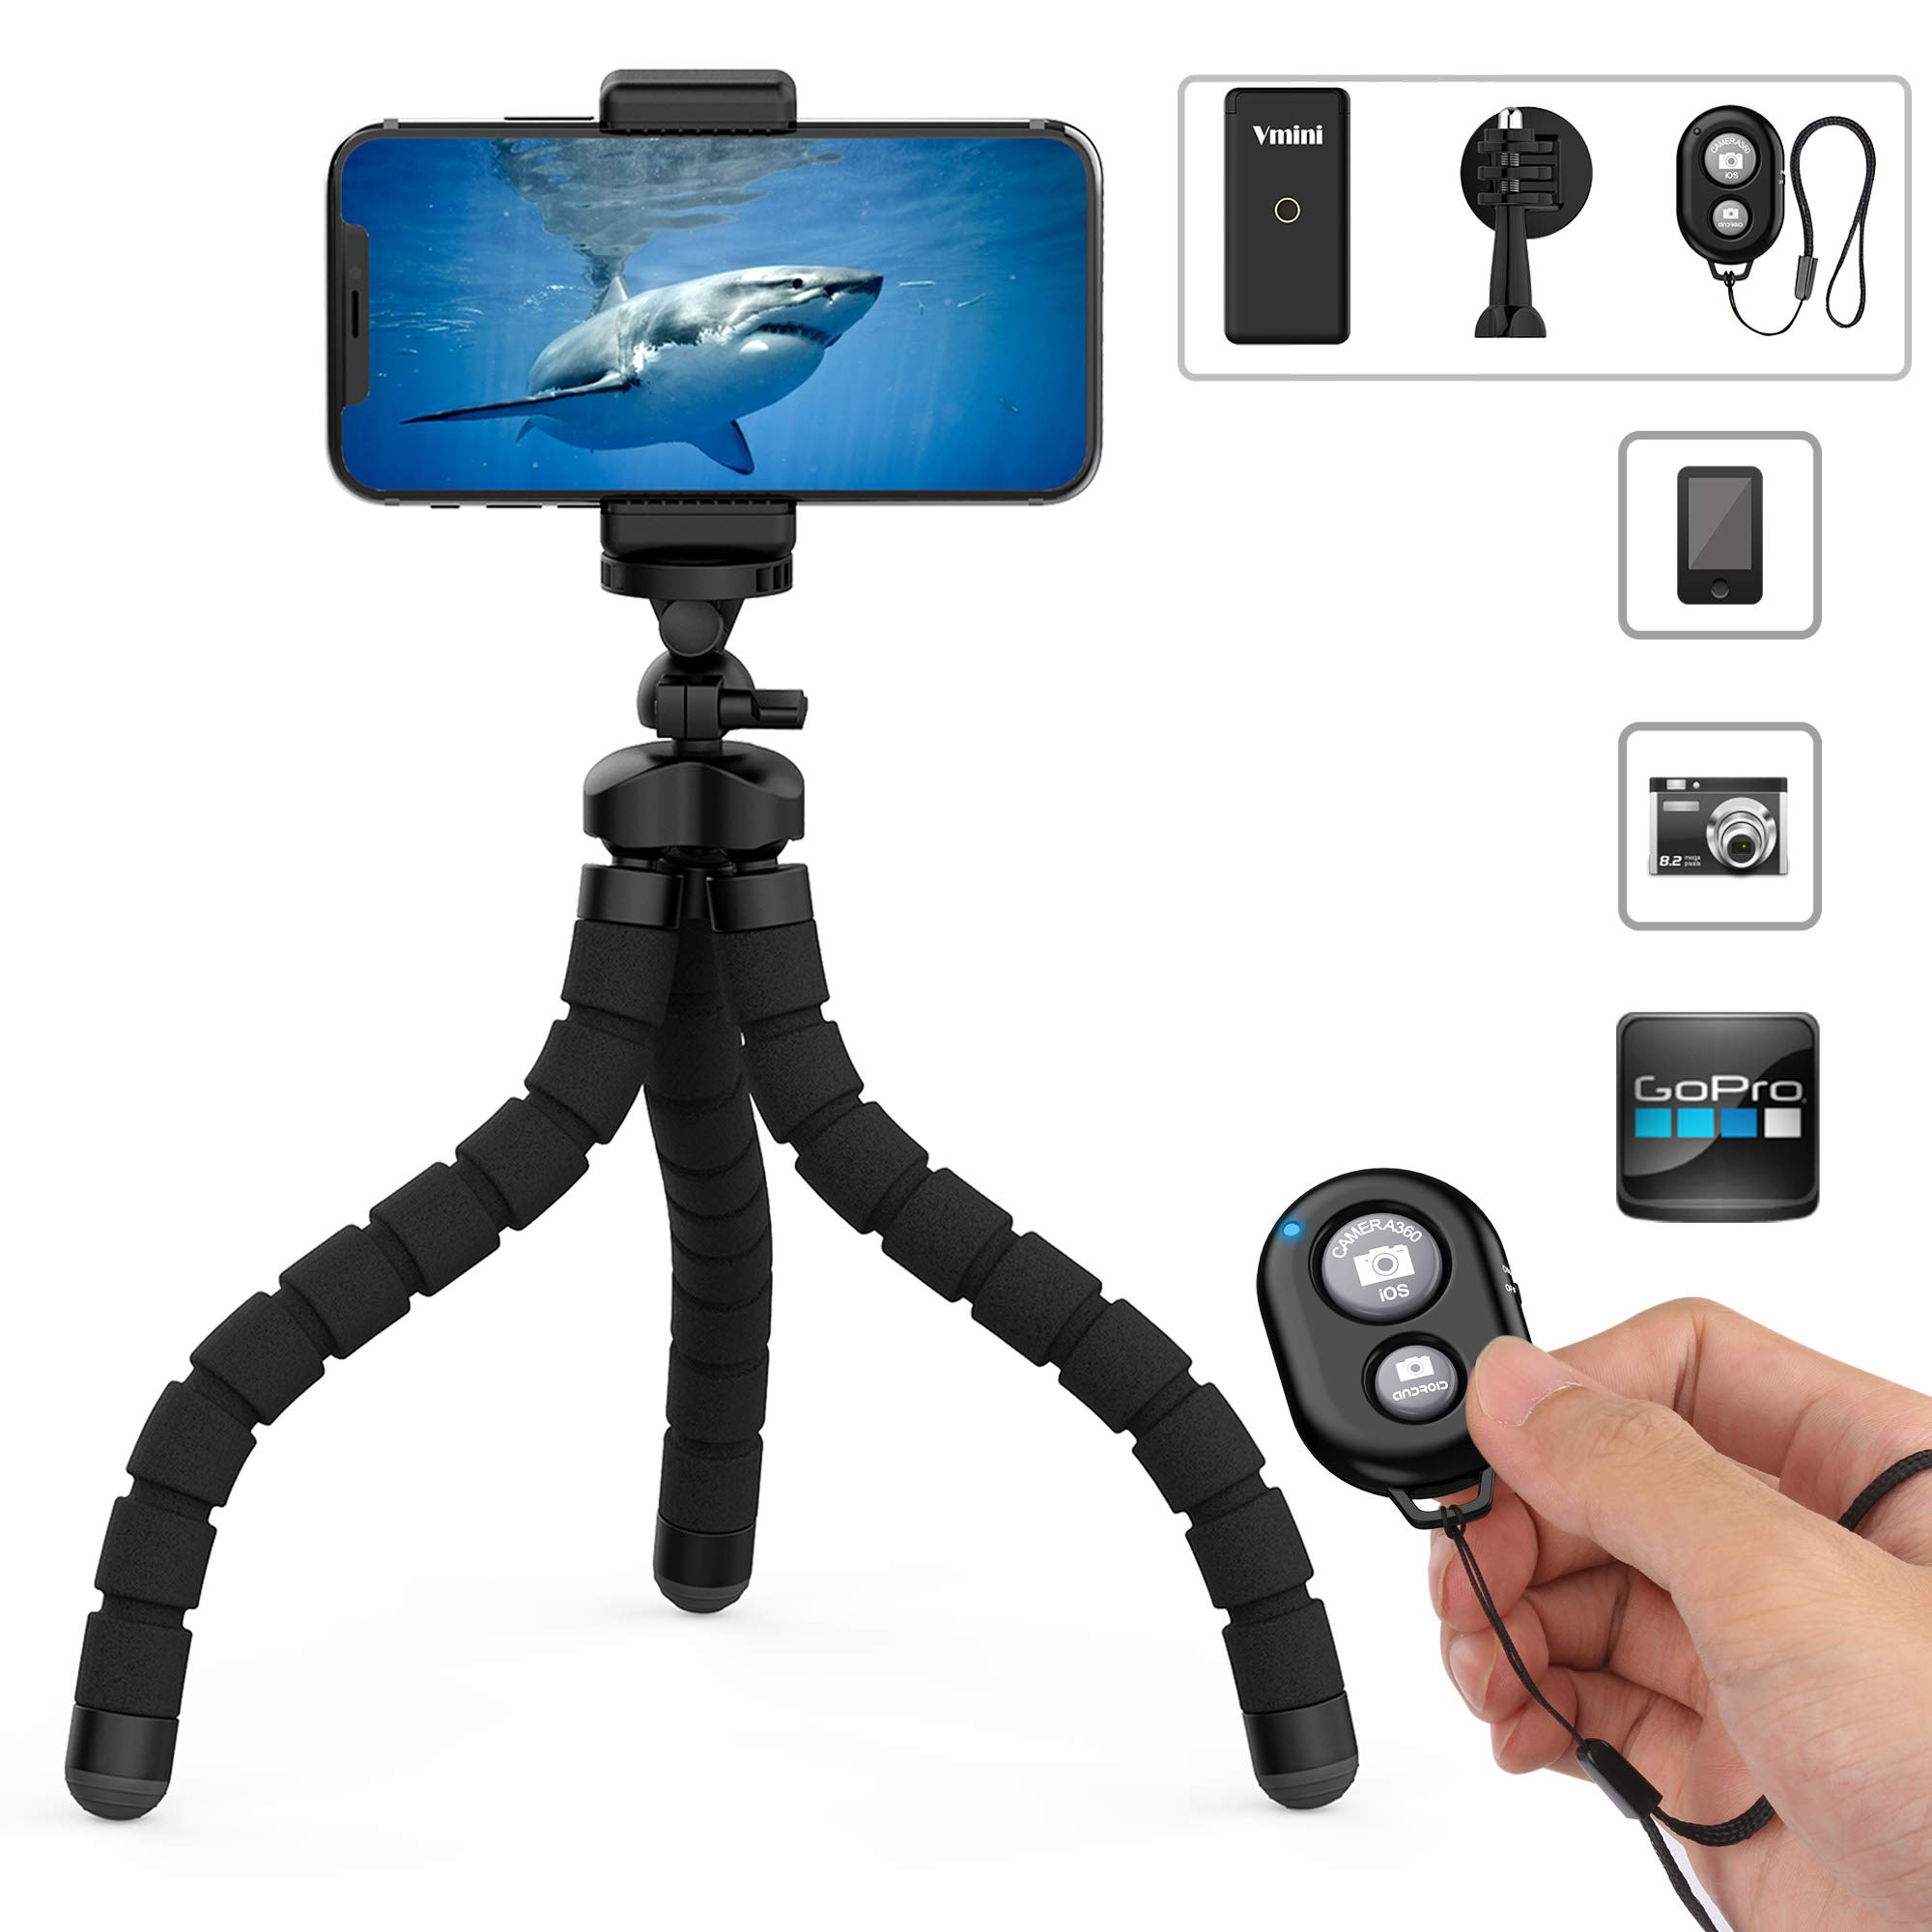 Phone Tripod, Vmini 11'' Extended & Flexible Tripod for iPhone, with Rock-Solid Quality, Bluetooth Remote Shutter for iOS/Android Phone, Accessories Perfect for Mobile Phone, Camera, Gopro Camera